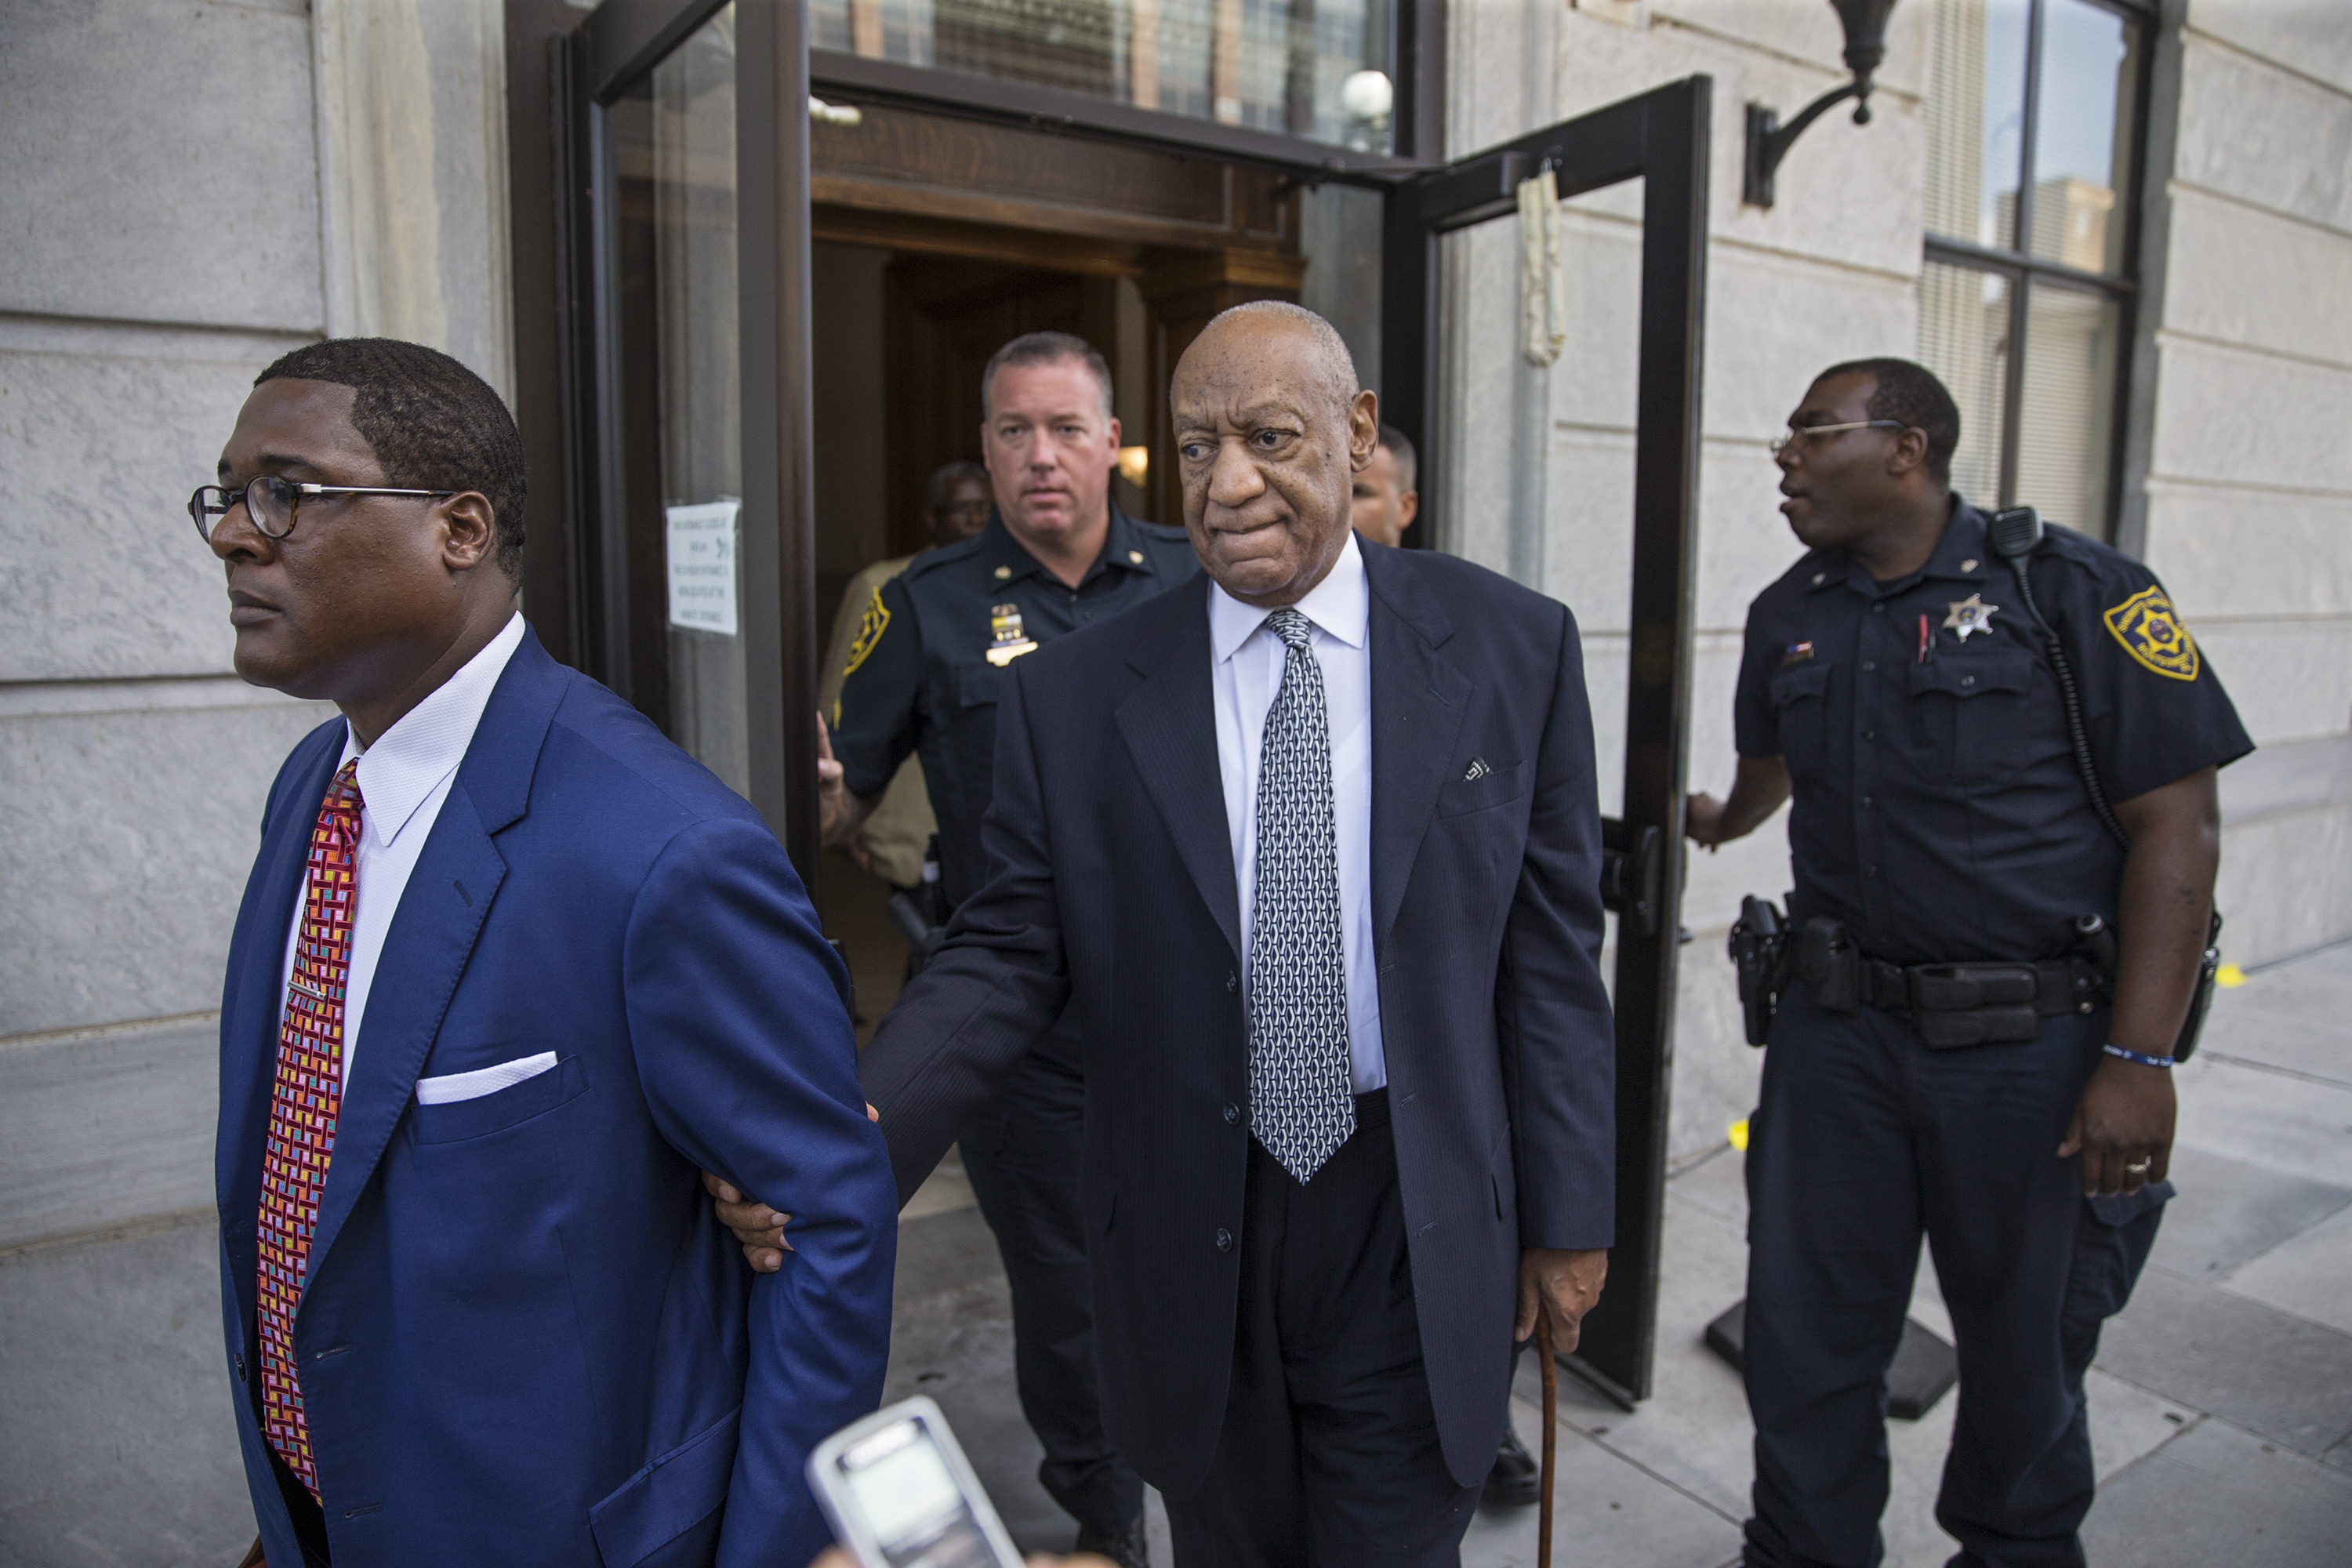 Bill Cosby leaves the Montgomery County Courthouse in Norristown, Pennsylvania on Aug. 22, 2017.